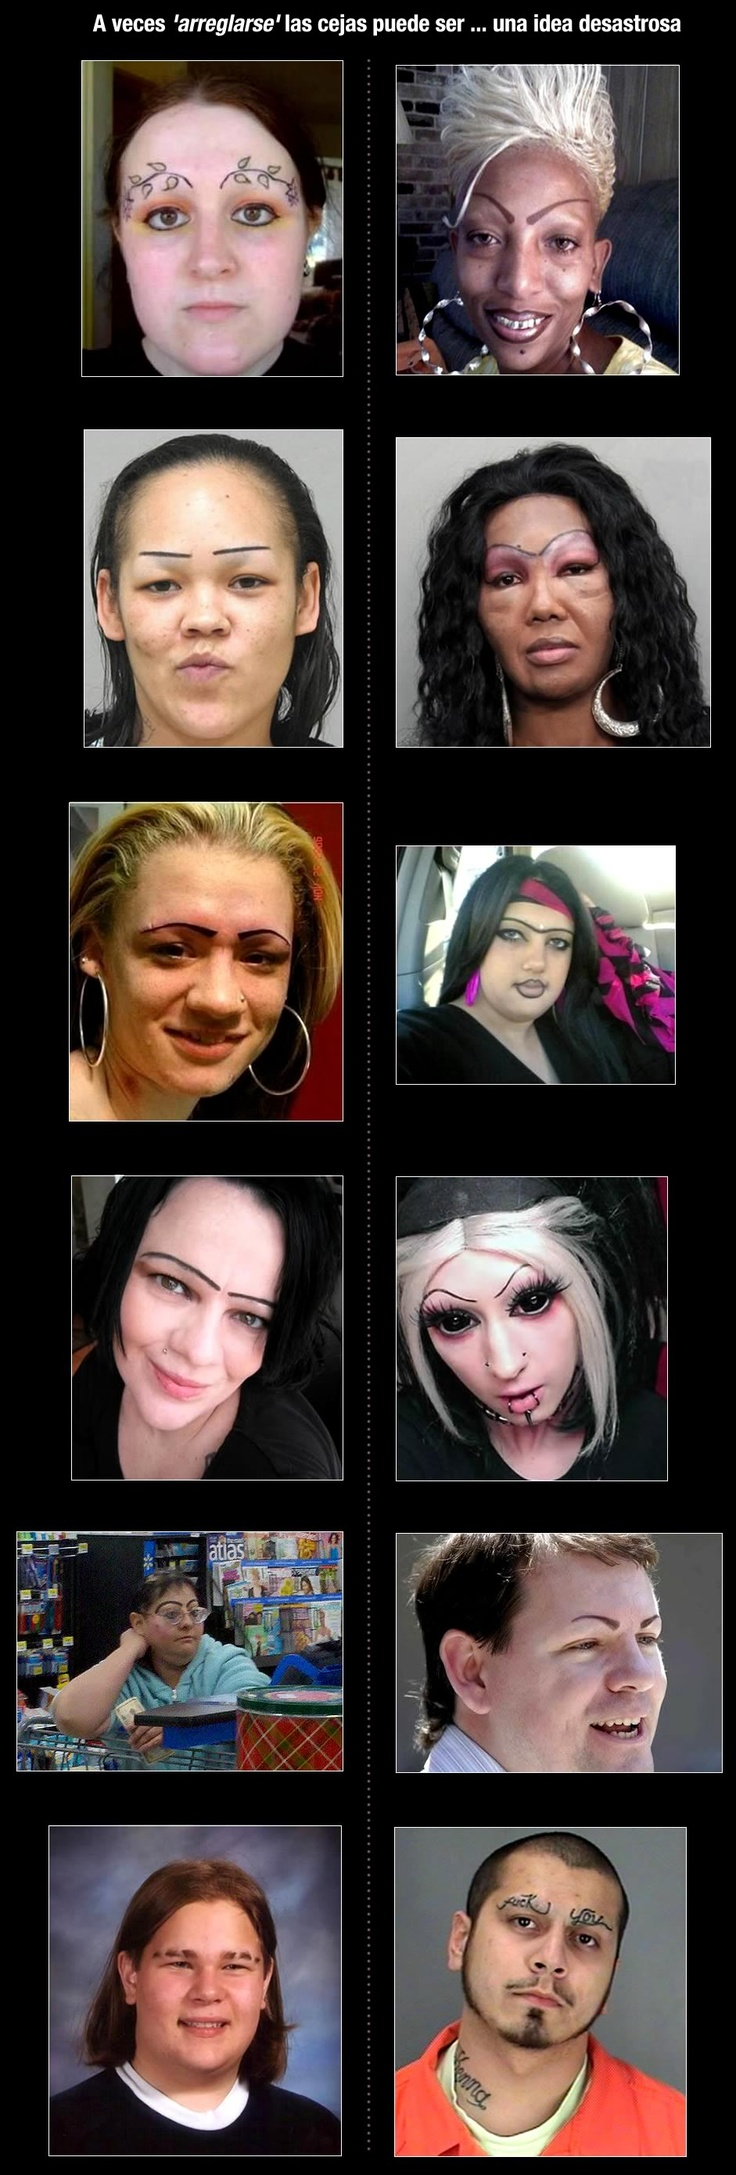 Bad-idea eyebrows- oh boy these people should step away from the sharpies.